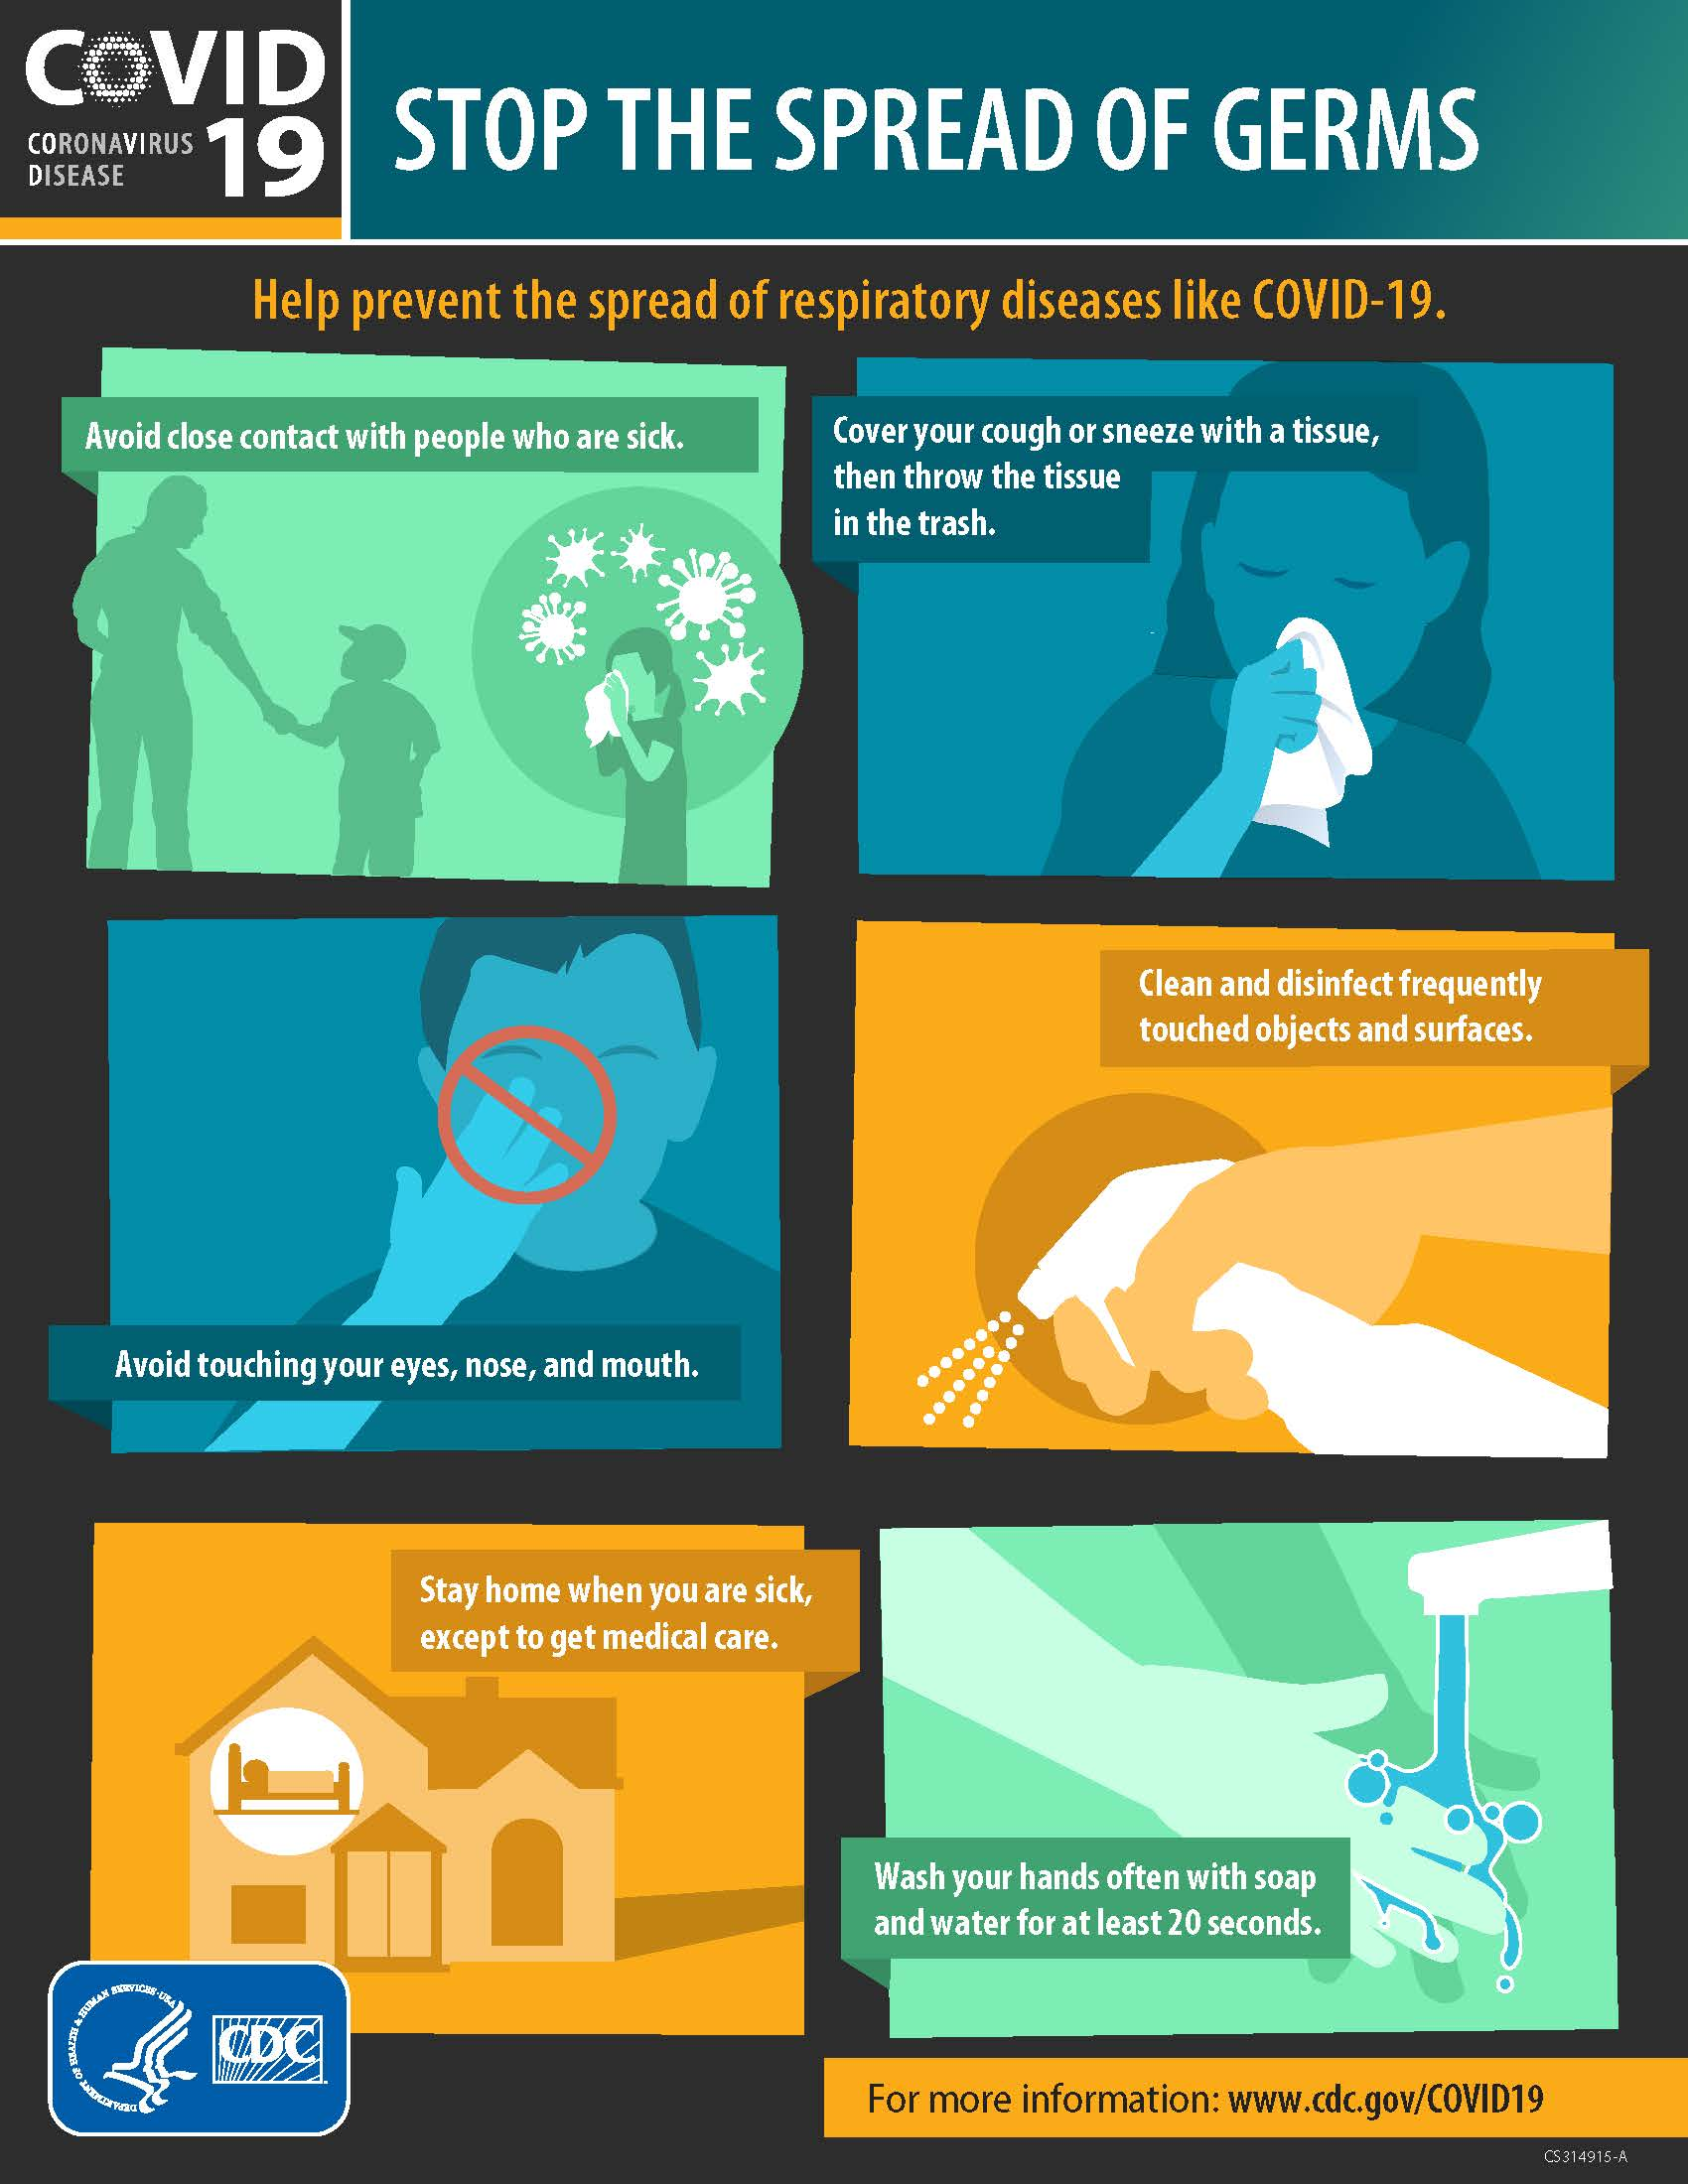 COVID19-stop-the-spread-of-germs